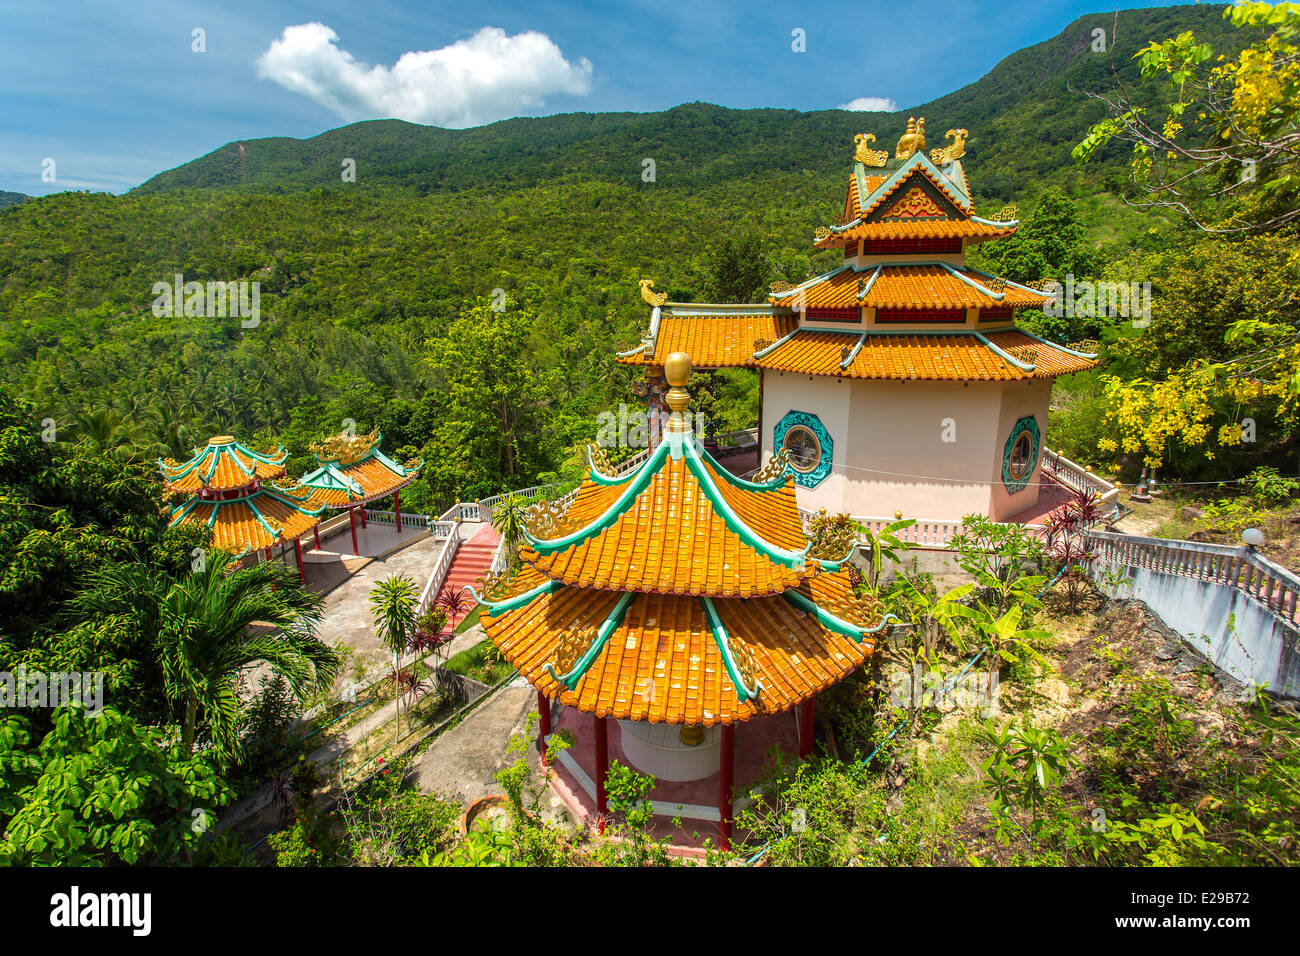 Kuan yin, chinese temple overlooking Chaloklum Bay at Koh Phangan, Thailand - Stock Image